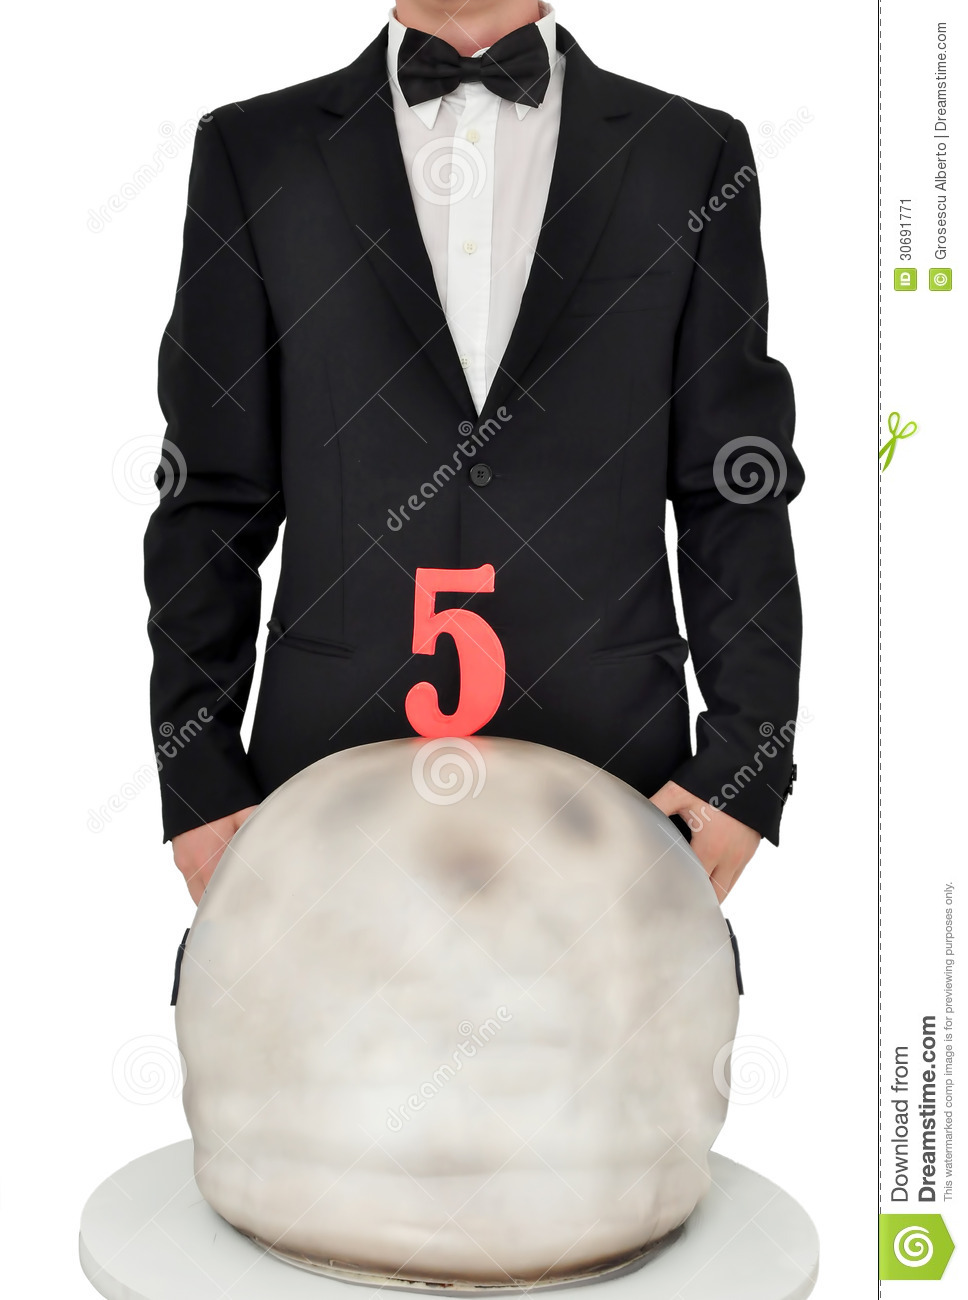 Man In Tuxedo With A Birthday Cake Stock Image Image